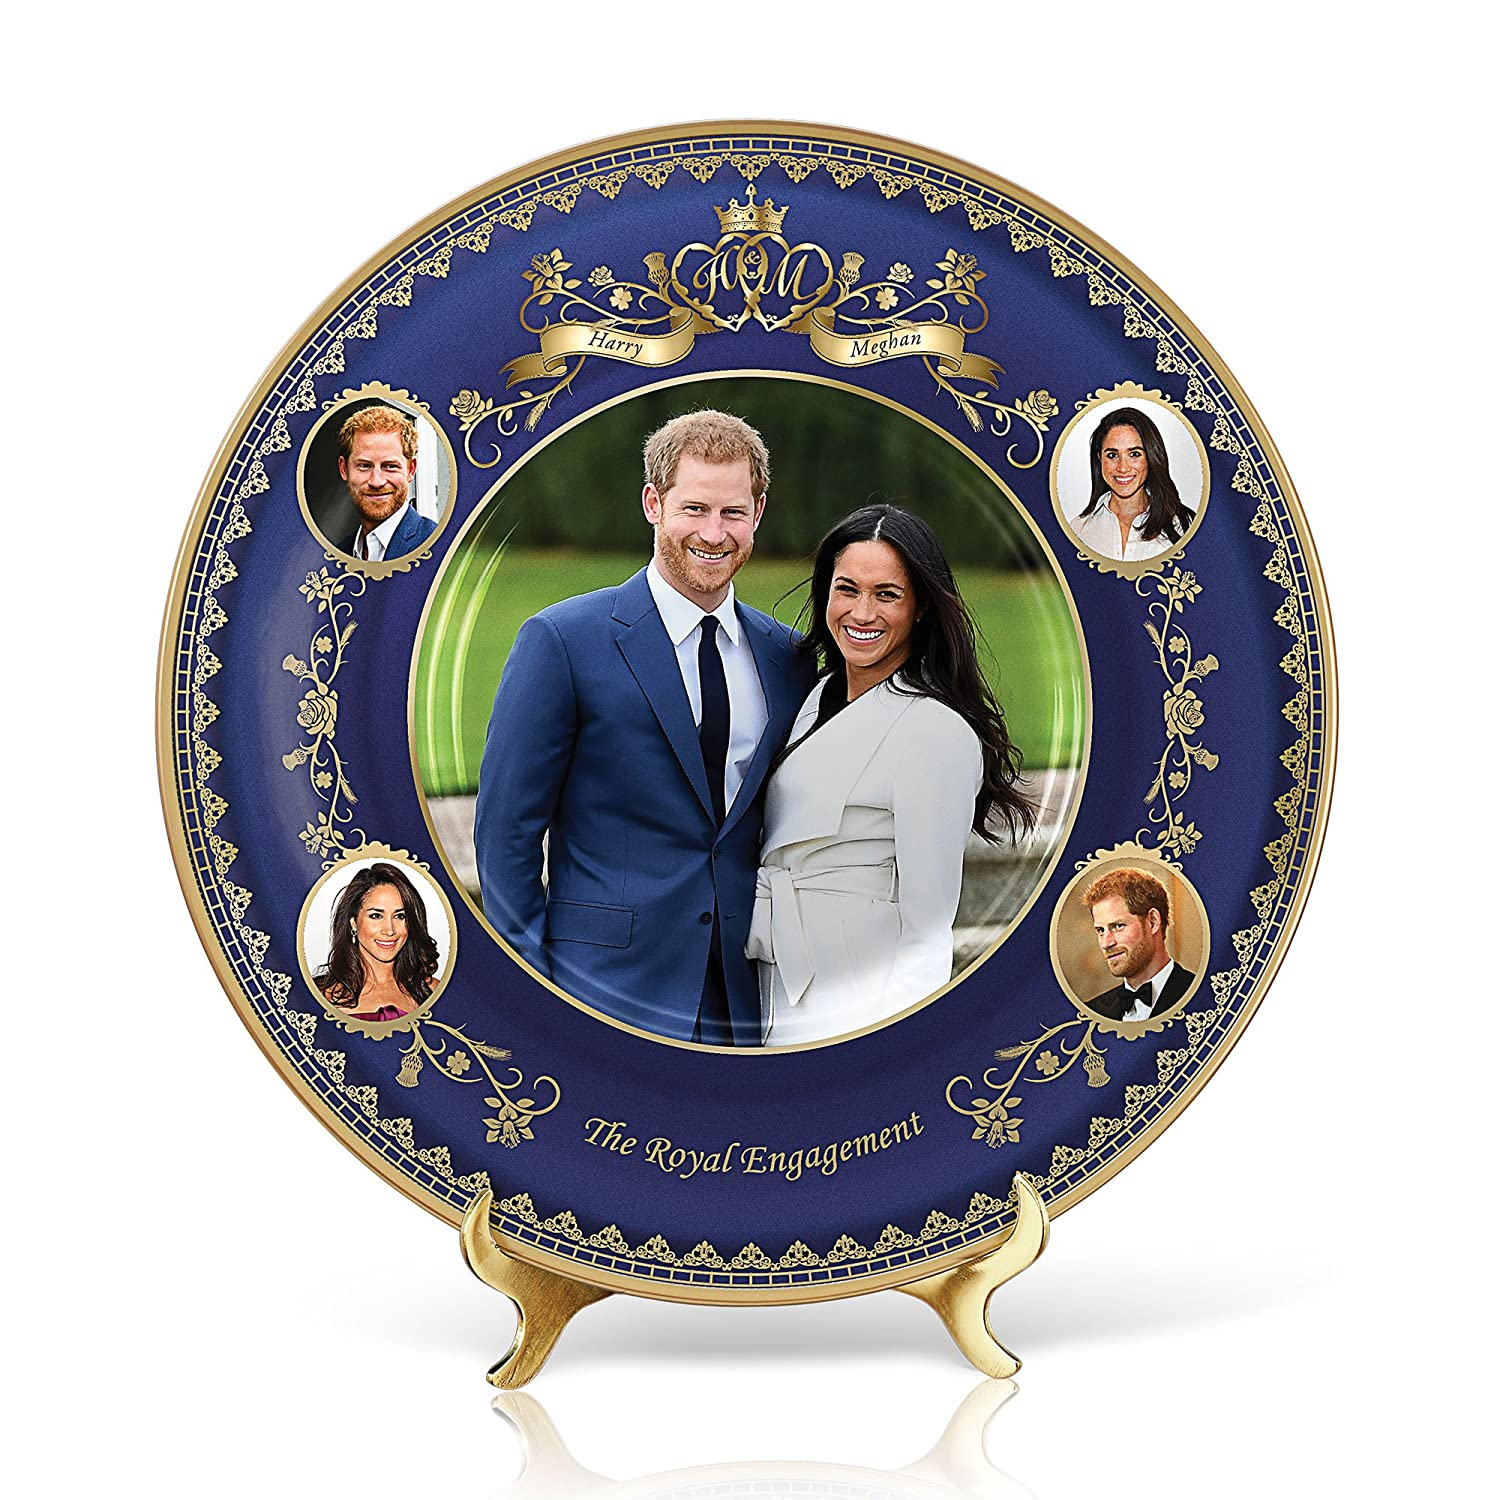 The Bradford Exchange 'The Royal Engagement' Prince Harry & Meghan Heirloom Porcelain® Plate –Commemoration Collector's Plate with 24-carat gold-plated accents. Exclusive to